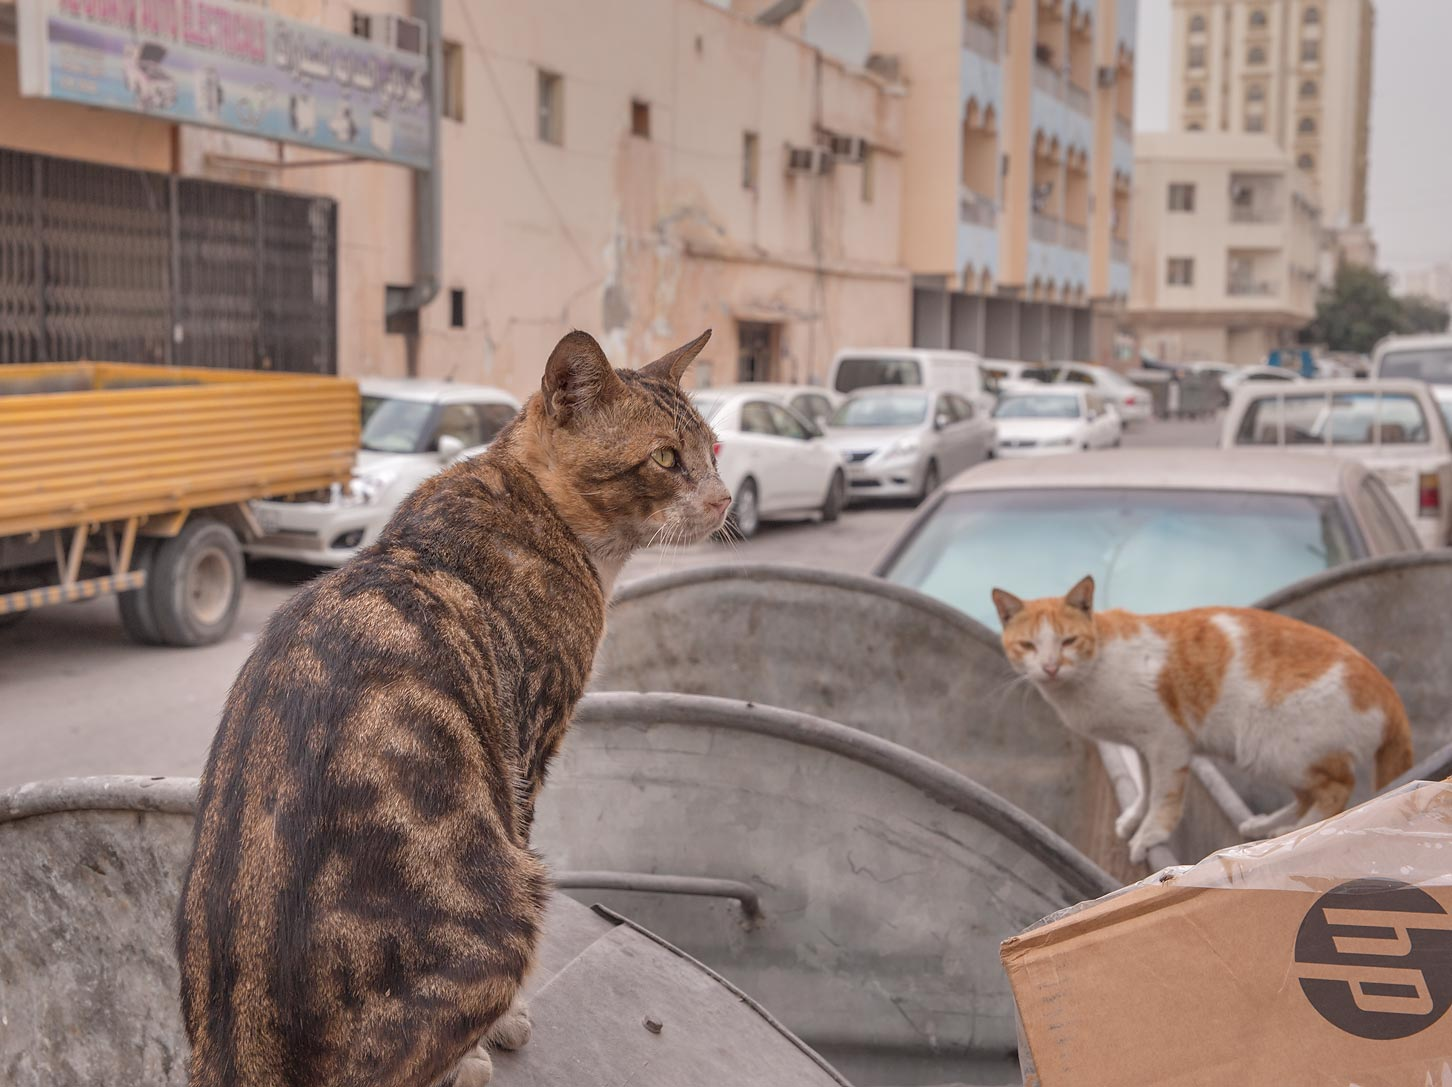 Cats raiding dumpsters at Zurara Bin Amir St. in...Al Jadeeda neighborhood. Doha, Qatar